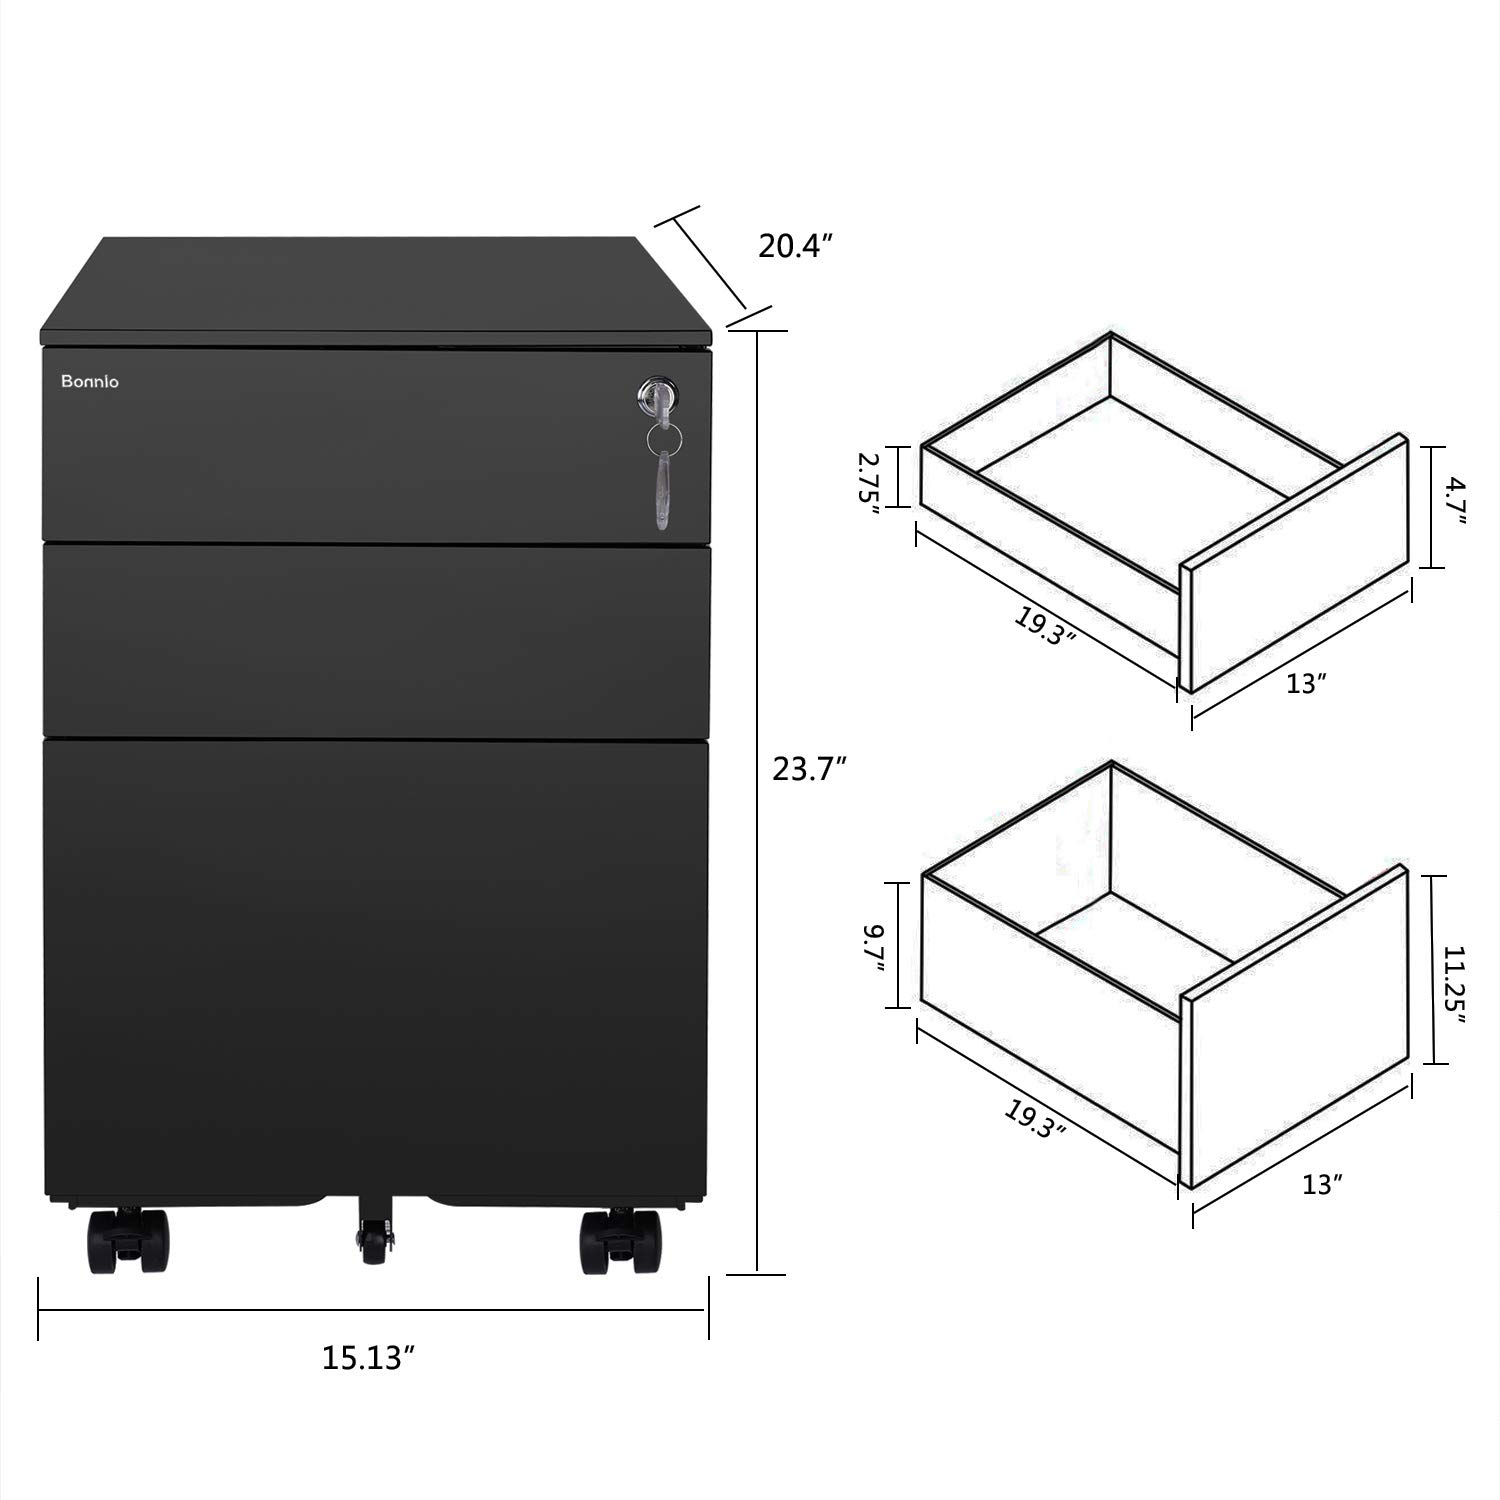 Bonnlo Mobile File Cabinet with Lock, 3 Smooth Gliding Drawers and Wheels for Home Office, Includes 25-Pack Hanging File Folders, Fully Assembled, Black by Bonnlo (Image #2)